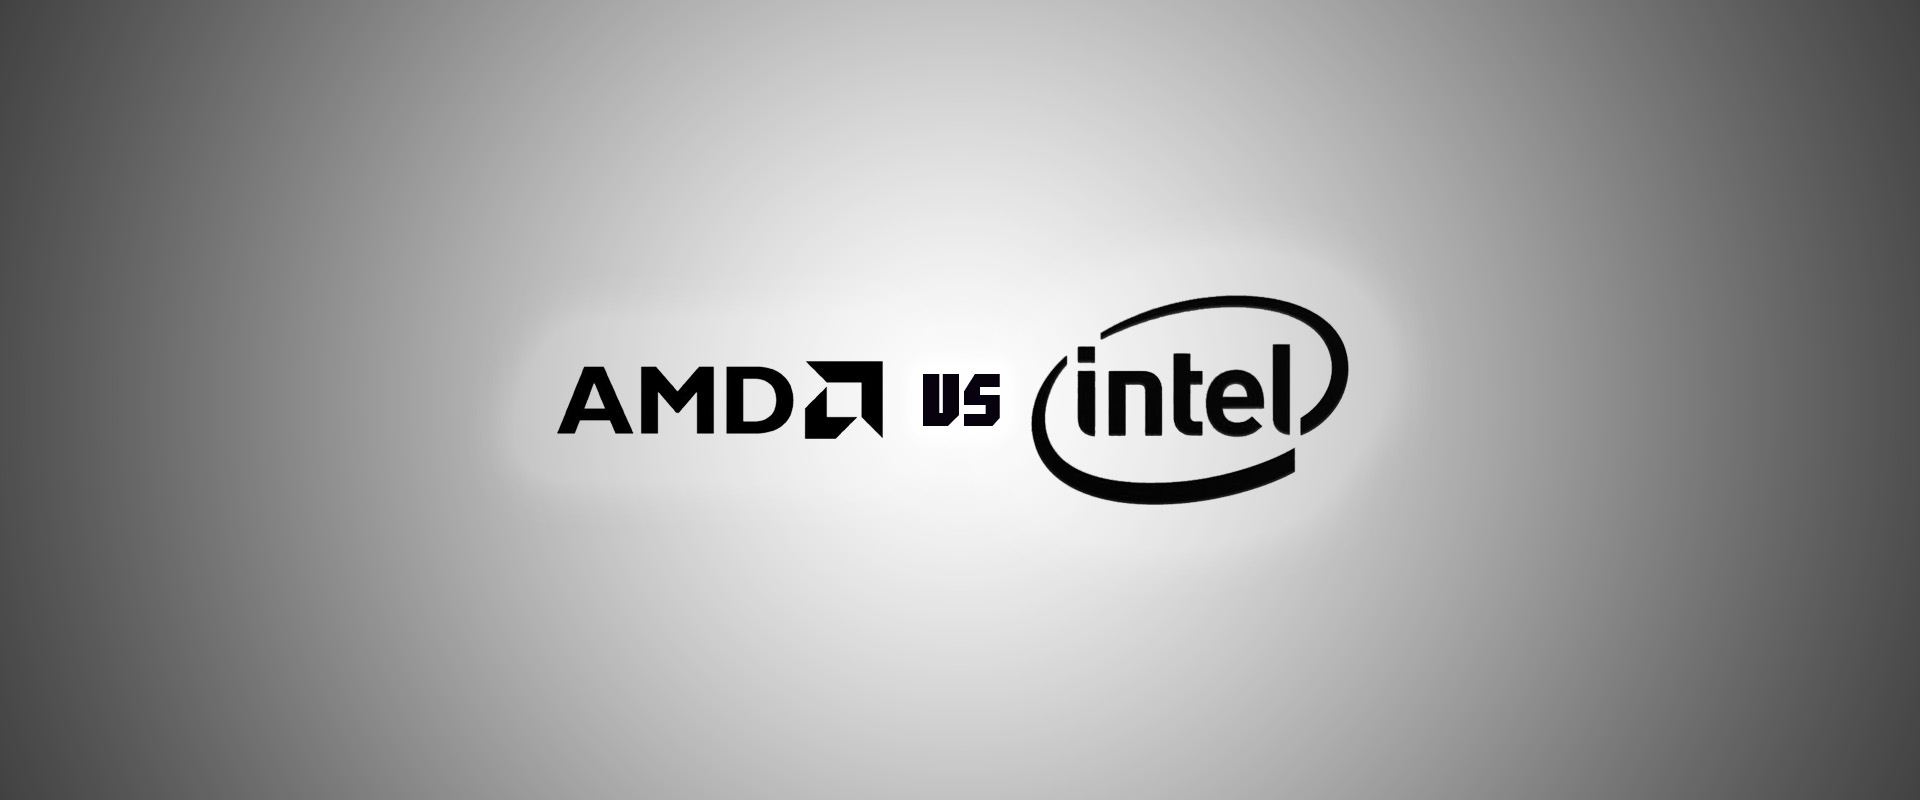 CPU #1 amd vs intel